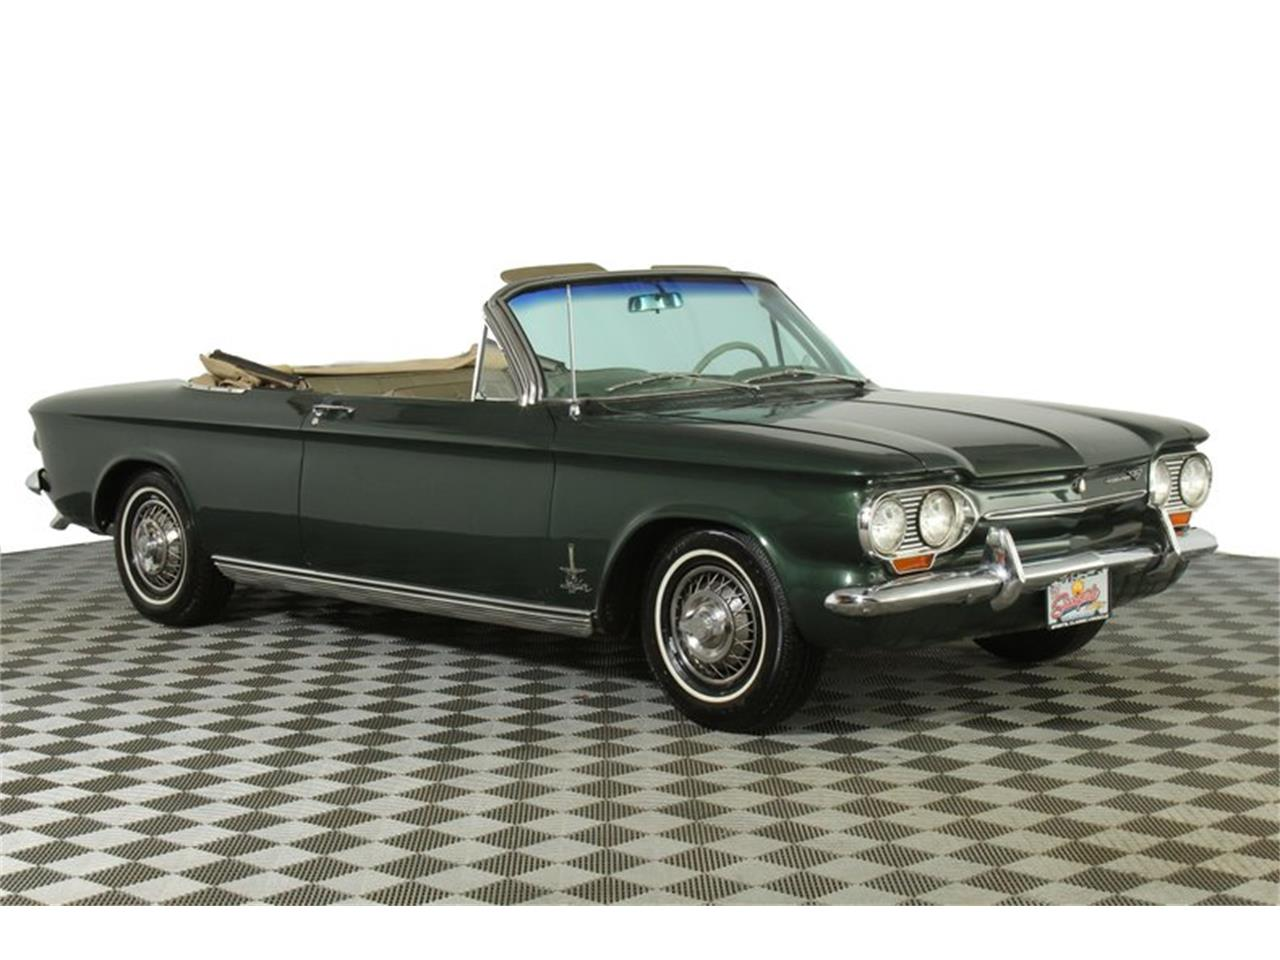 1963 Chevrolet Corvair (CC-1272427) for sale in Elyria, Ohio